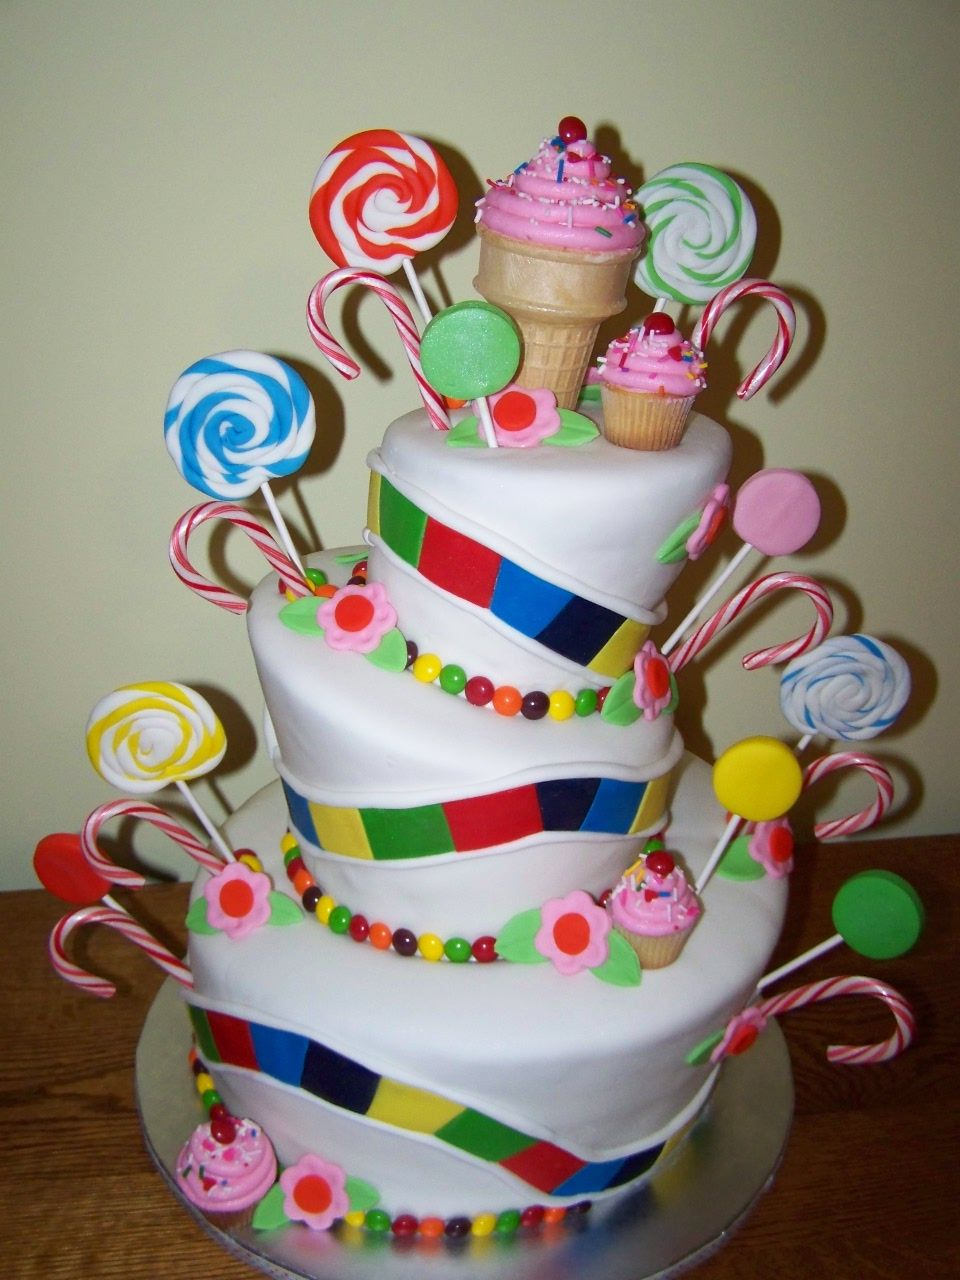 This Would Be A Cute Cake For Girls Birthday Party If They Are Between 4 7 Years Old